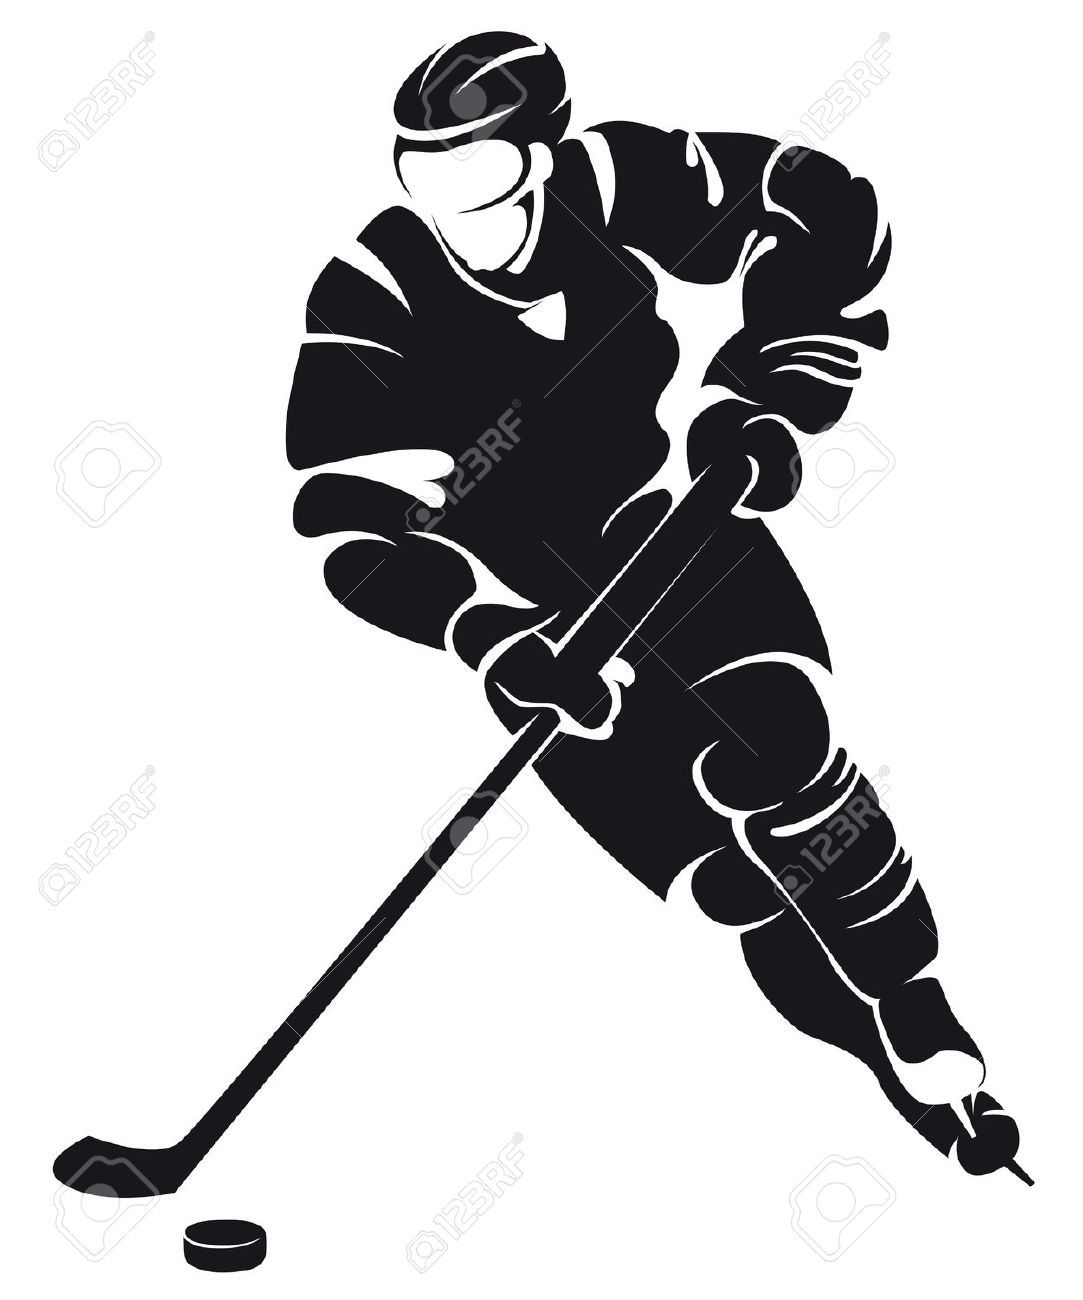 0d340a058a37 Hockey clipart vector free - ClipartFest